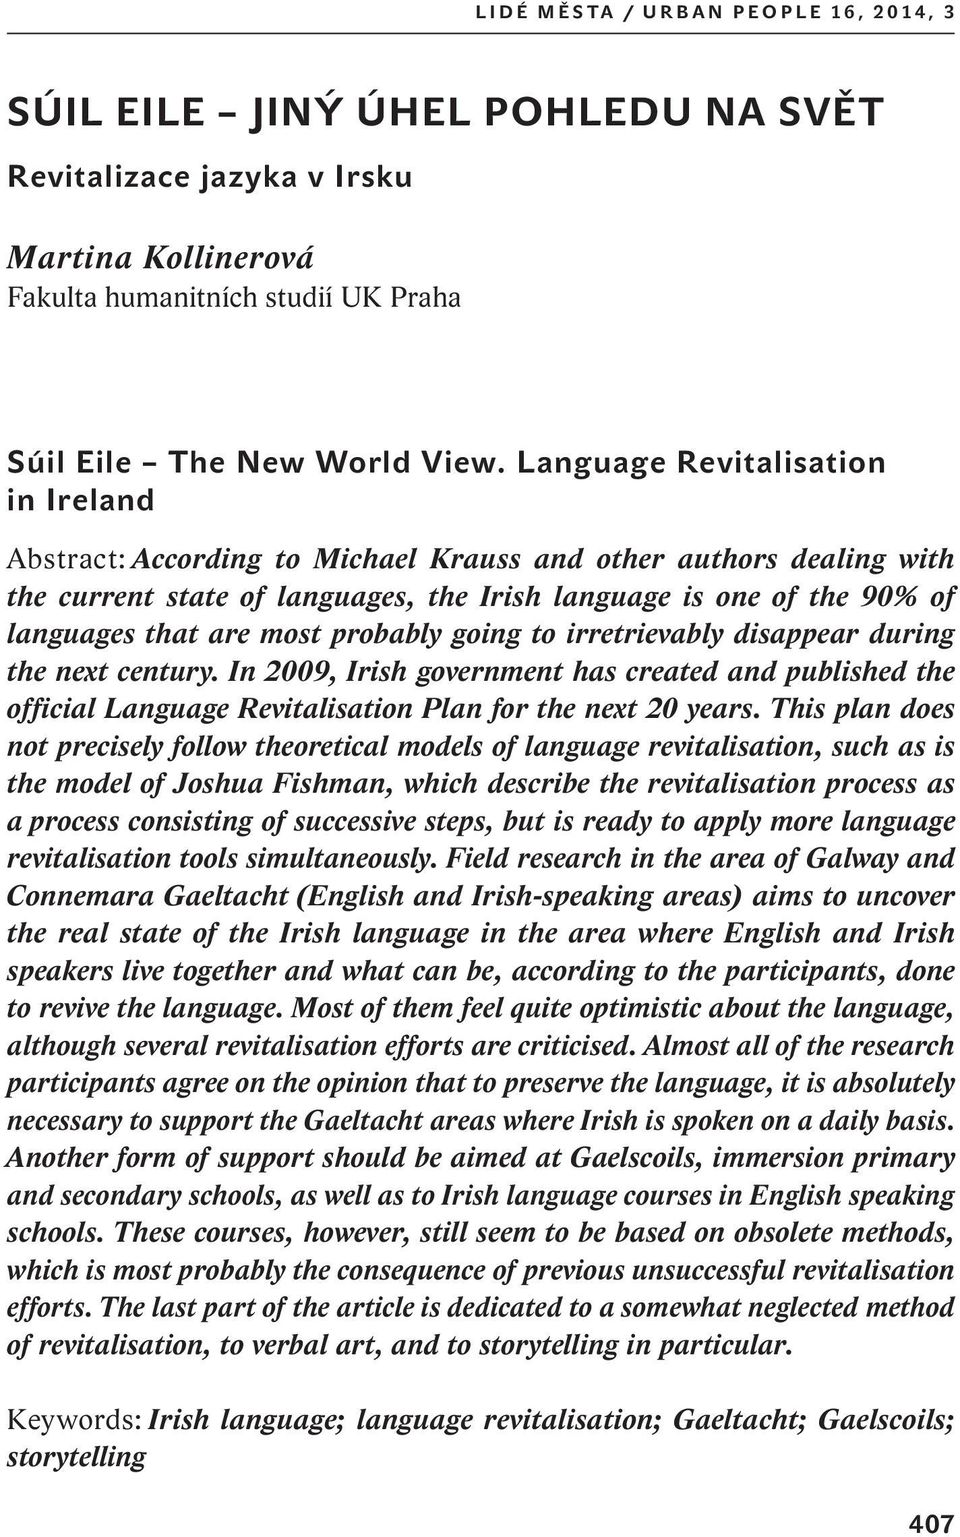 probably going to irretrievably disappear during the next century. In 2009, Irish government has created and published the official Language Revitalisation Plan for the next 20 years.